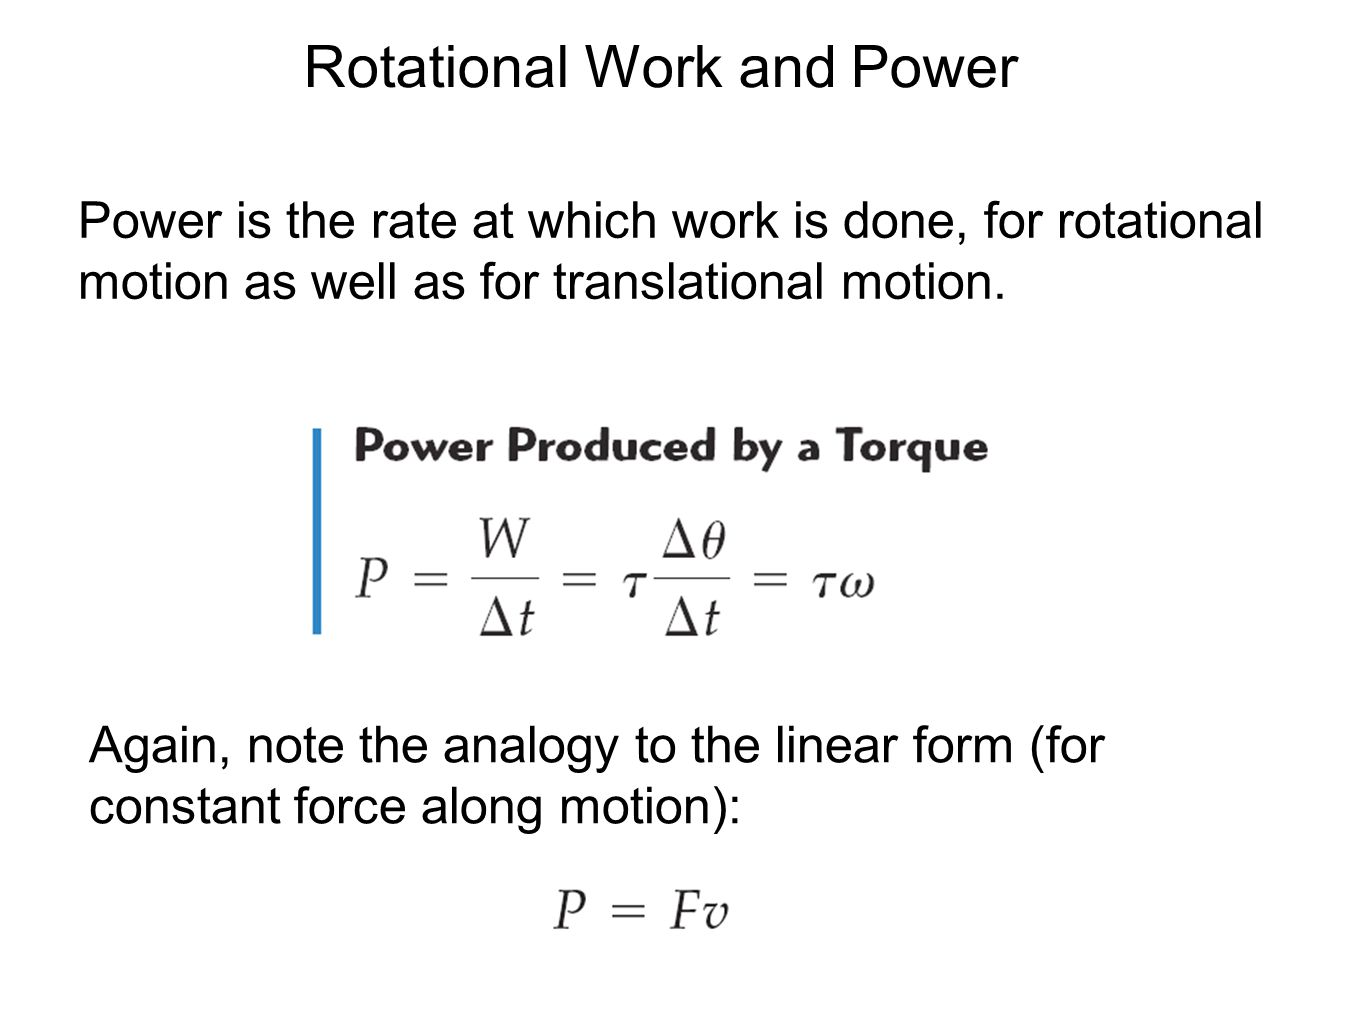 Rotational Work and Power Power is the rate at which work is done, for rotational motion as well as for translational motion. Again, note the analogy